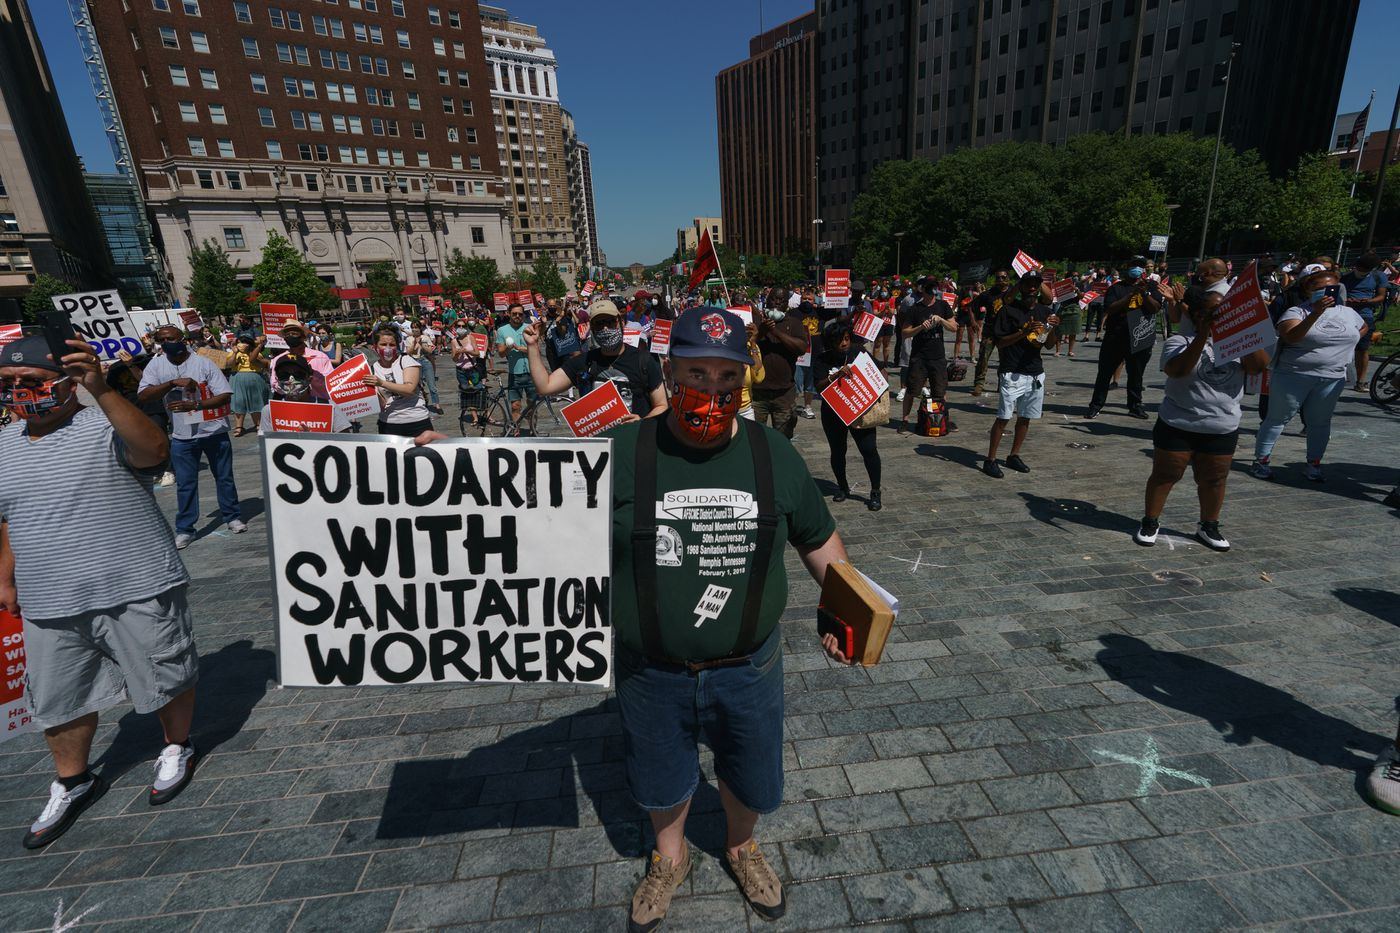 Attendees at a rally and protest to support sanitation workers who are requesting hazard pay and PPE, engage in a social distancing protest at LOVE Park, in Philadelphia, June 09, 2020.